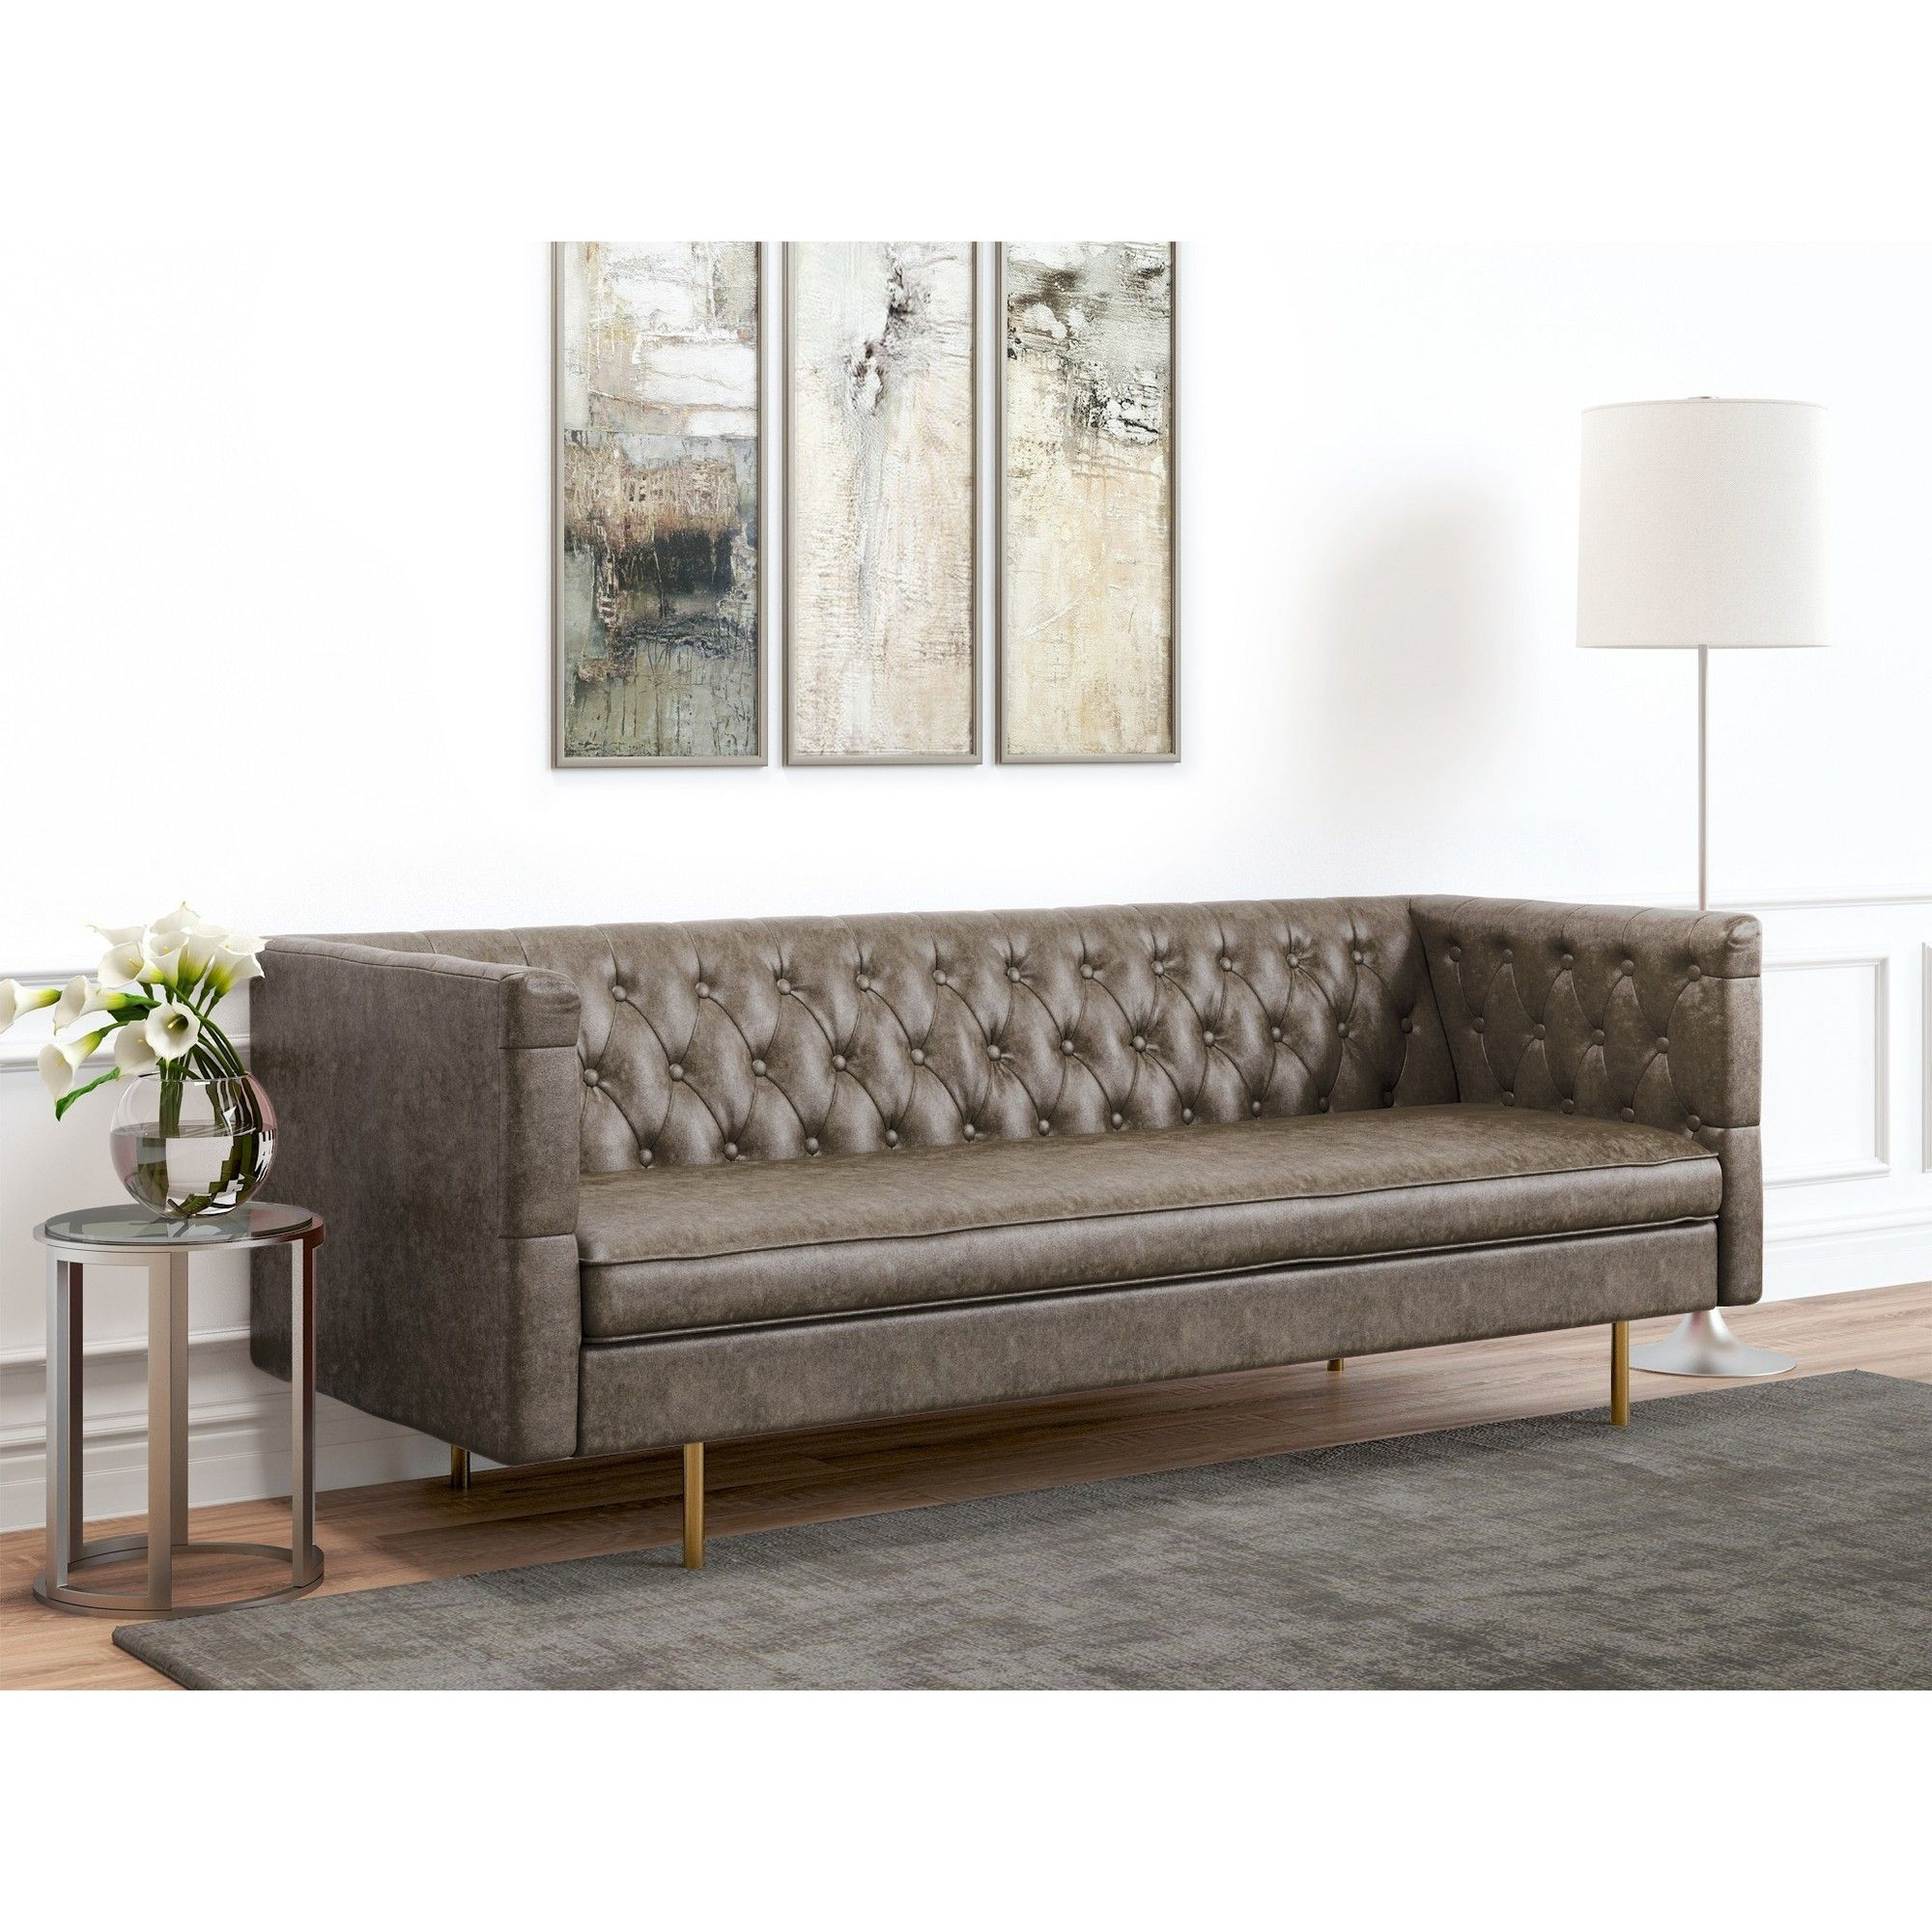 Strange Barnaby Tufted Faux Leather Sofa Vintage Gray Af Lifestyle Beatyapartments Chair Design Images Beatyapartmentscom